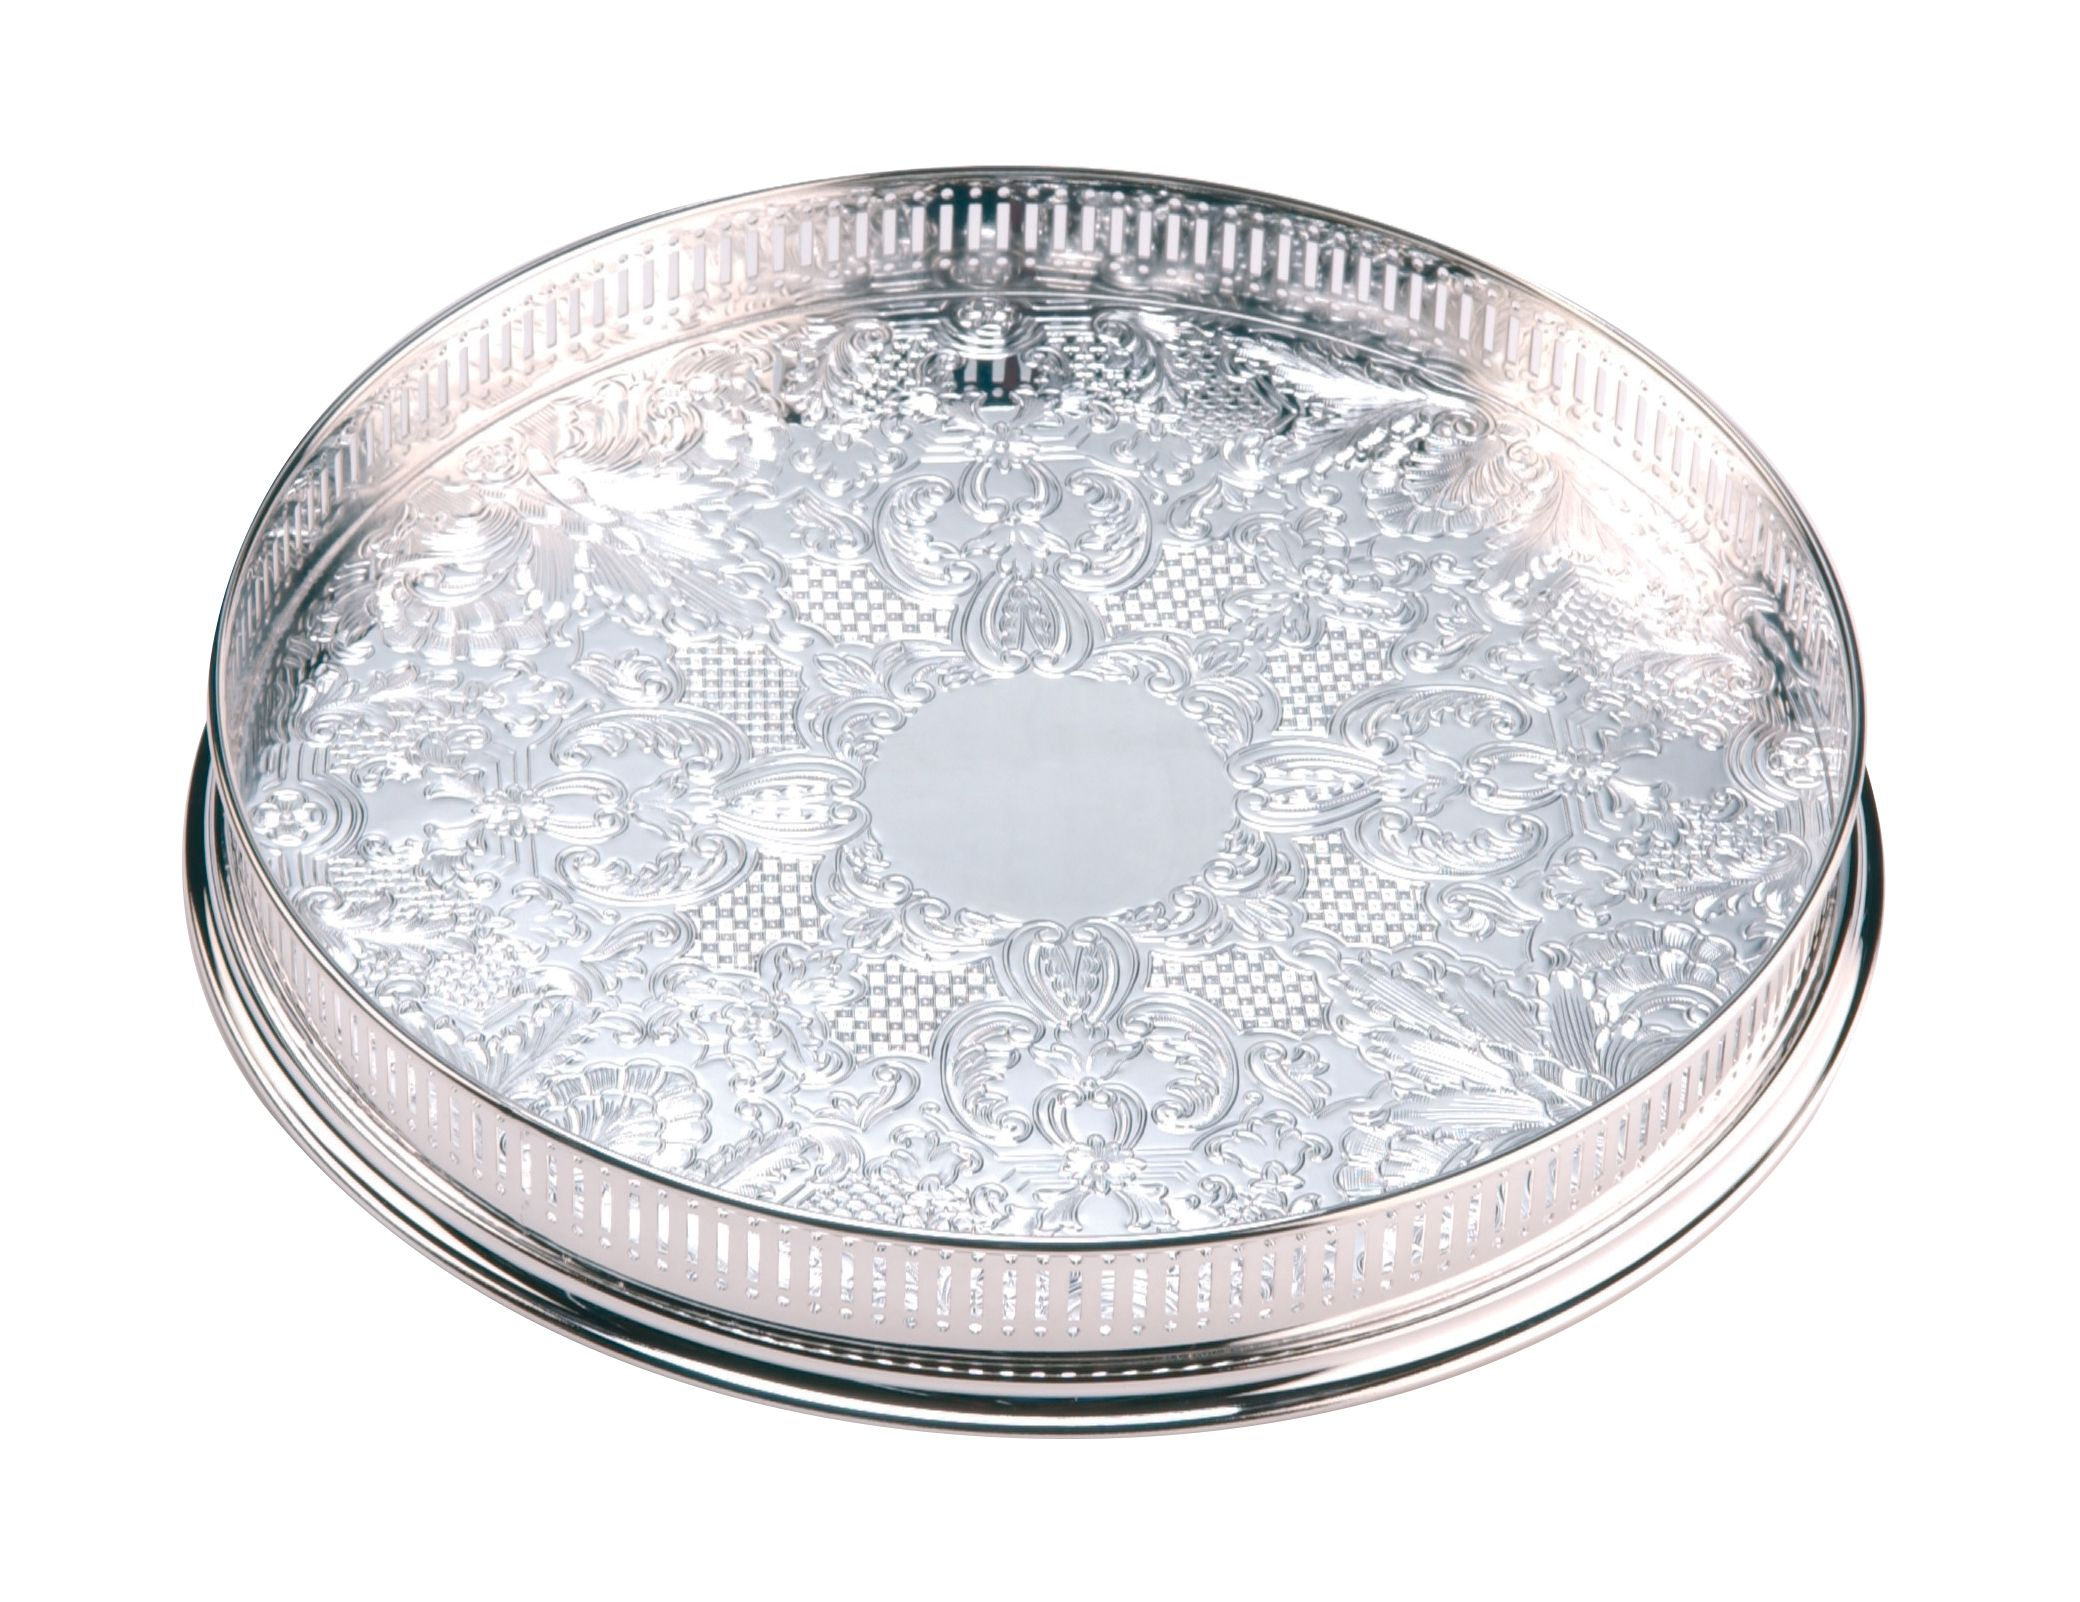 Arthur Price 14 inch round embossed gallery tray